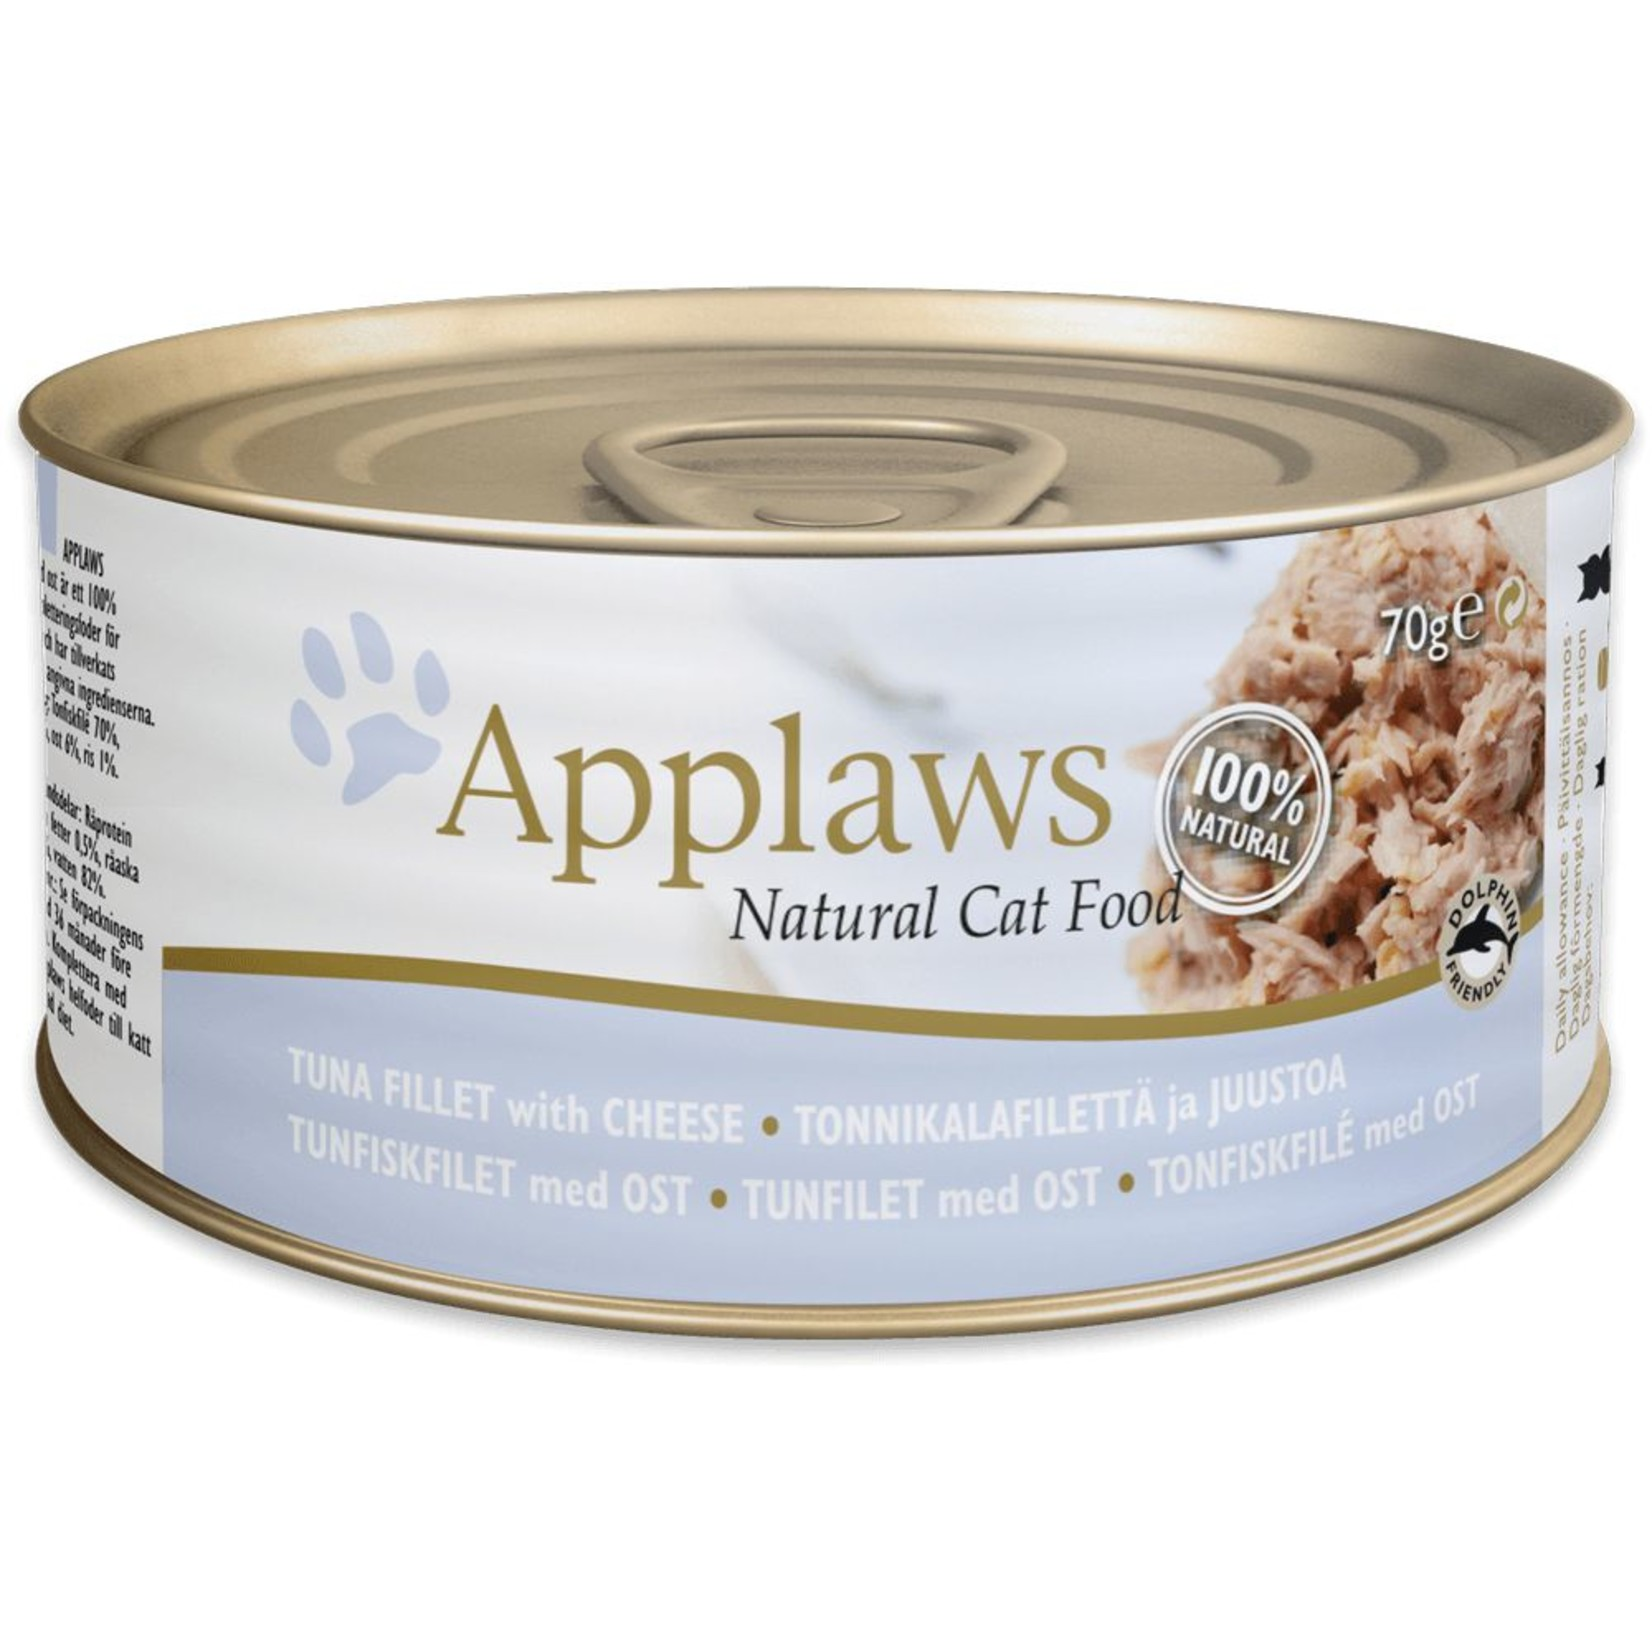 Applaws Cat Wet Food Tuna Fillet & Cheese, 156g